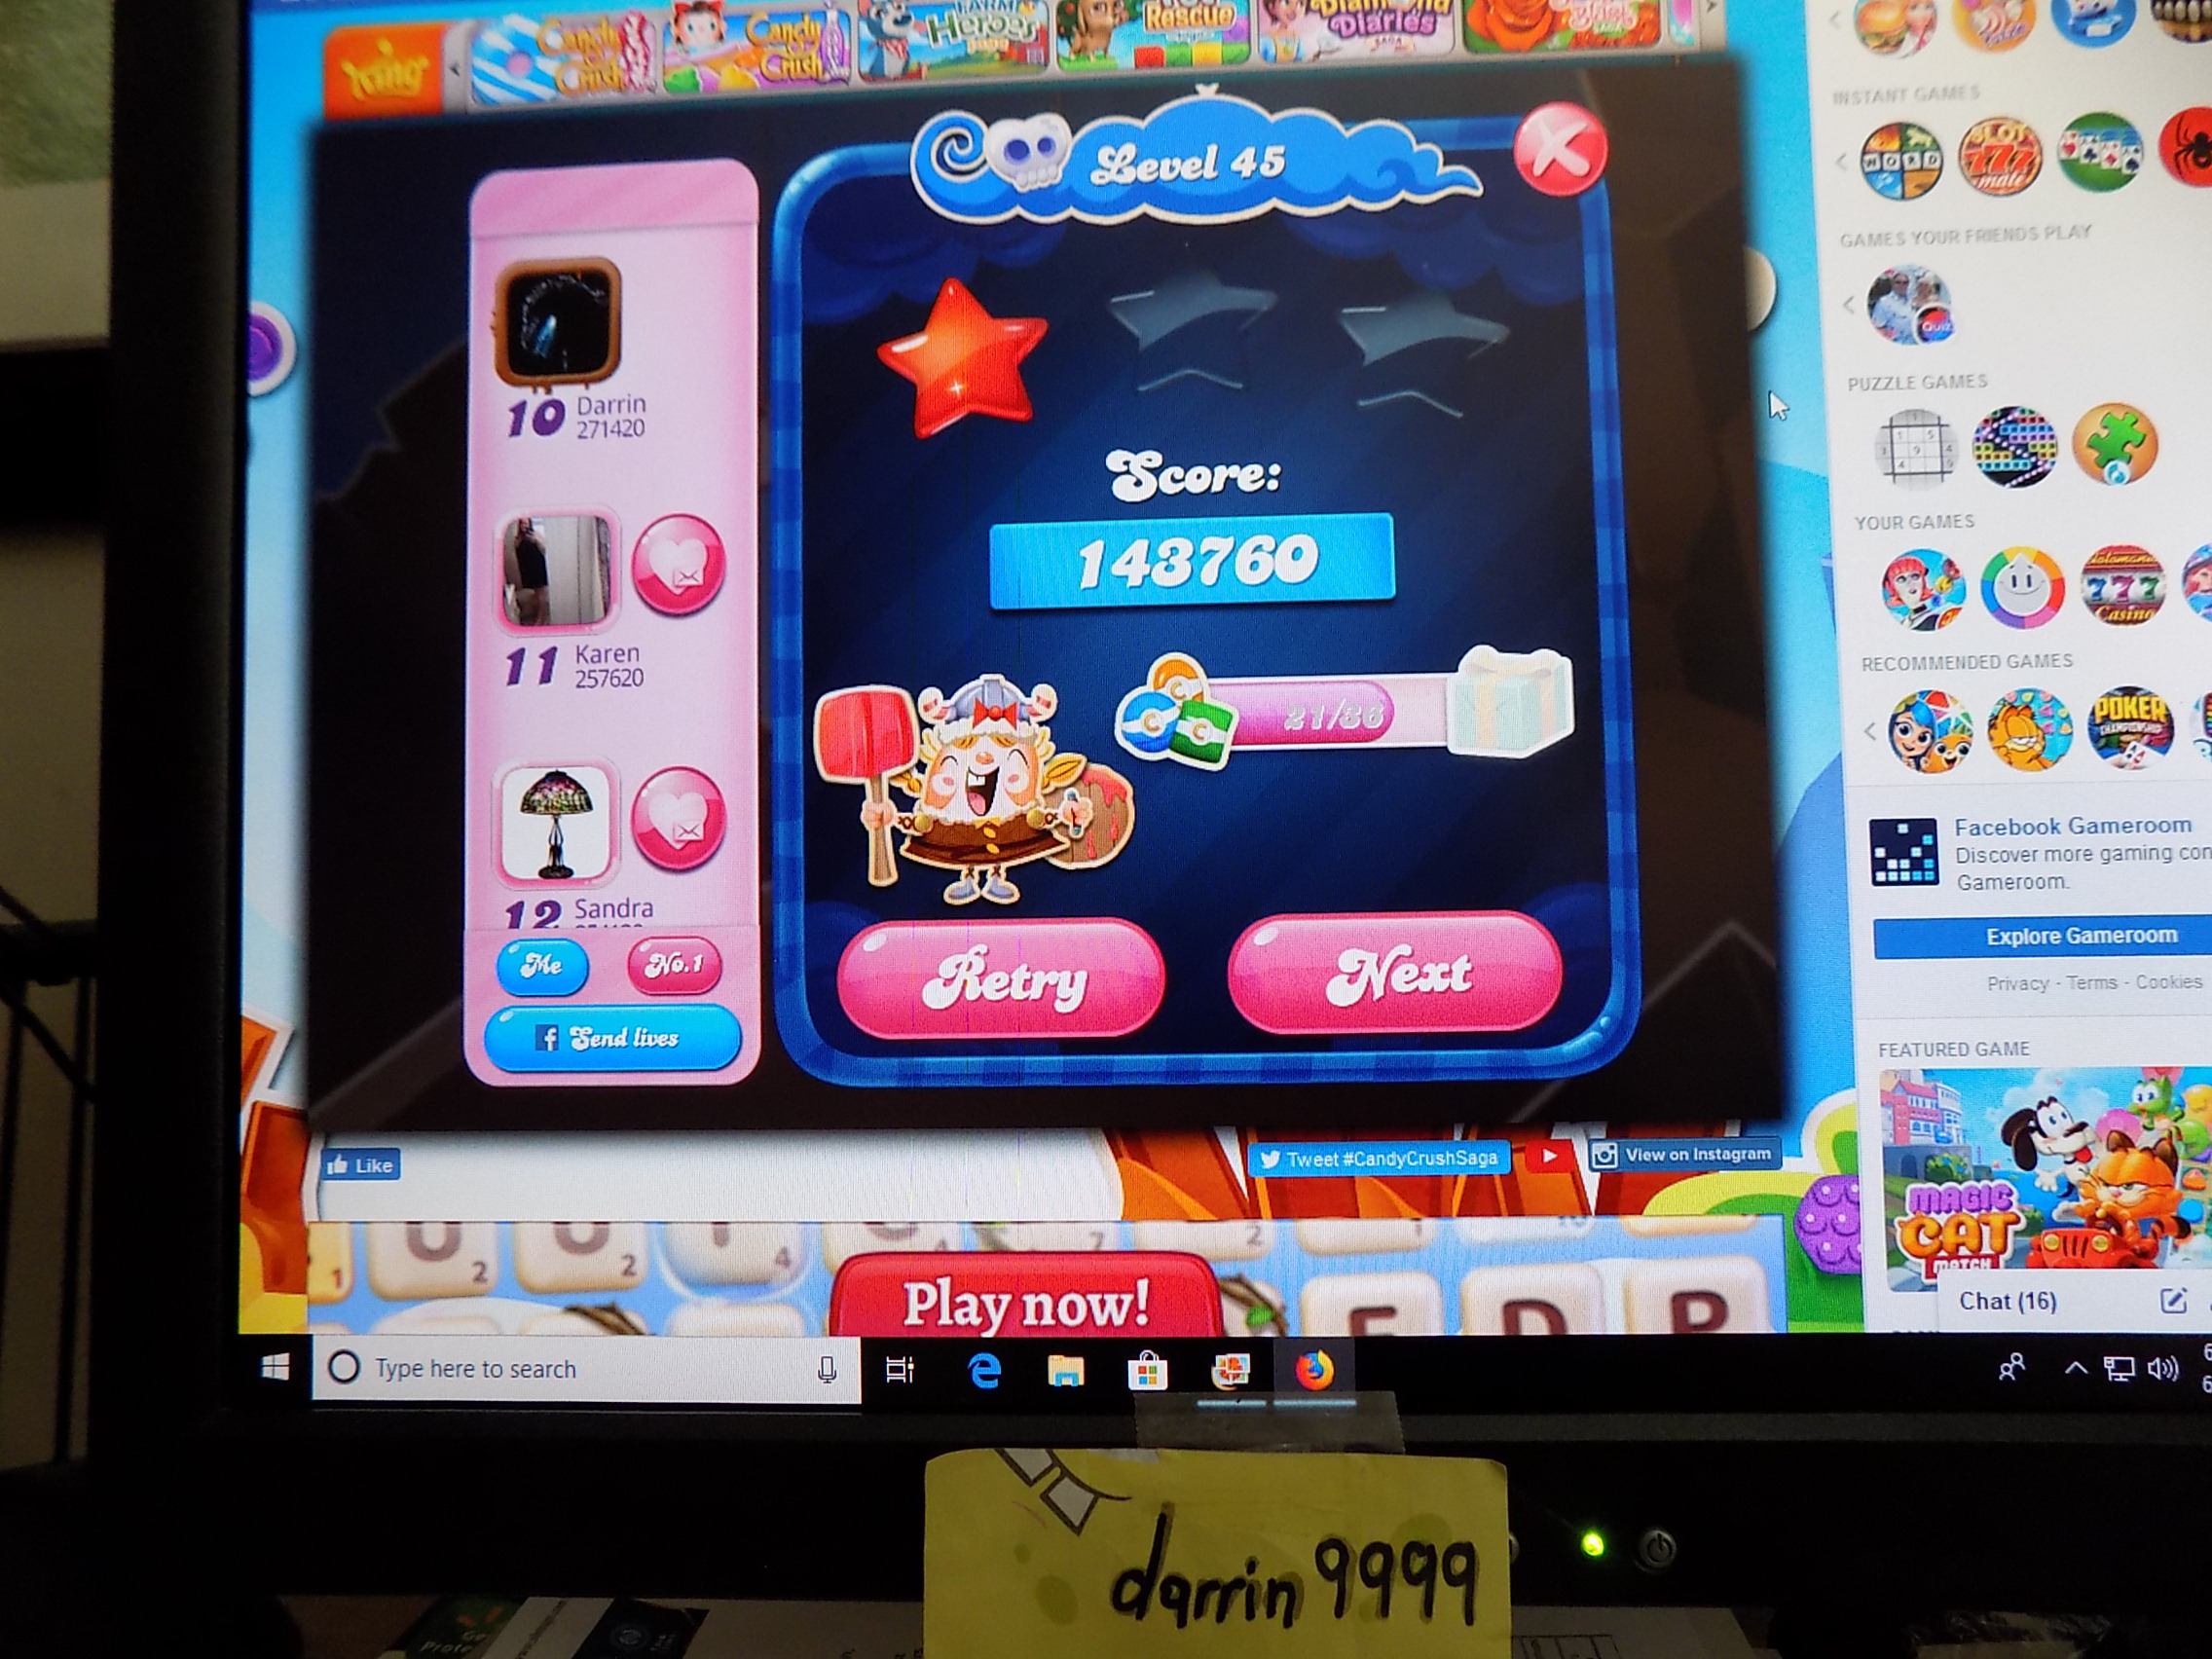 darrin9999: Candy Crush Saga: Level 045 (Web) 143,760 points on 2019-06-05 15:58:25